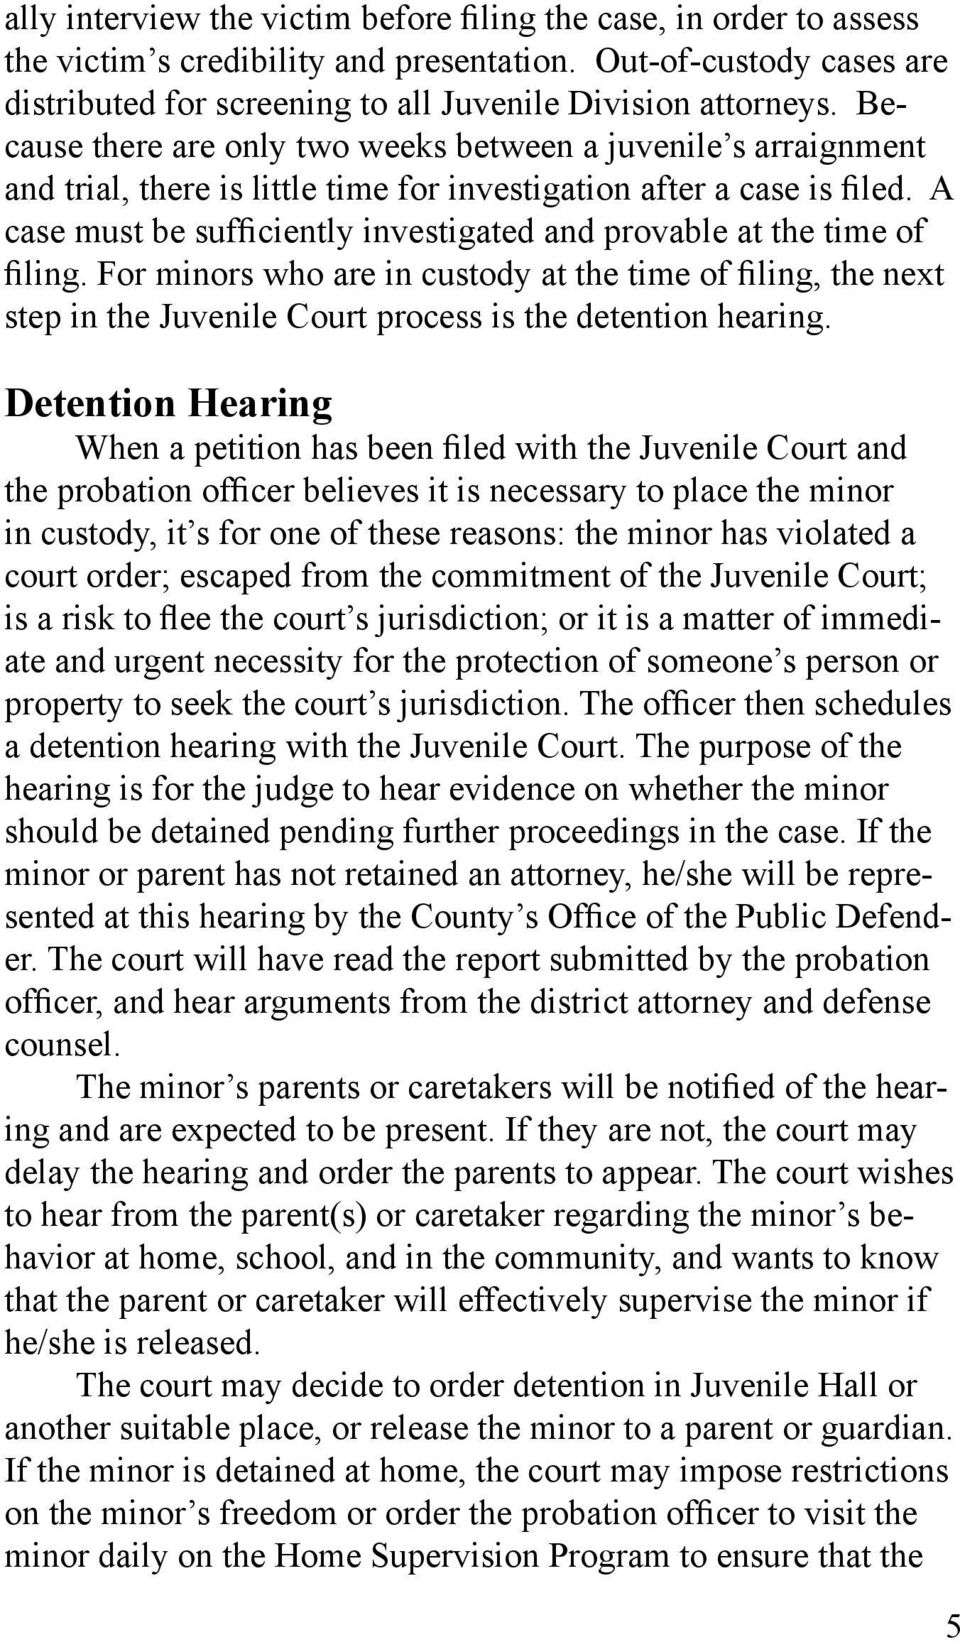 A case must be sufficiently investigated and provable at the time of filing. For minors who are in custody at the time of filing, the next step in the Juvenile Court process is the detention hearing.